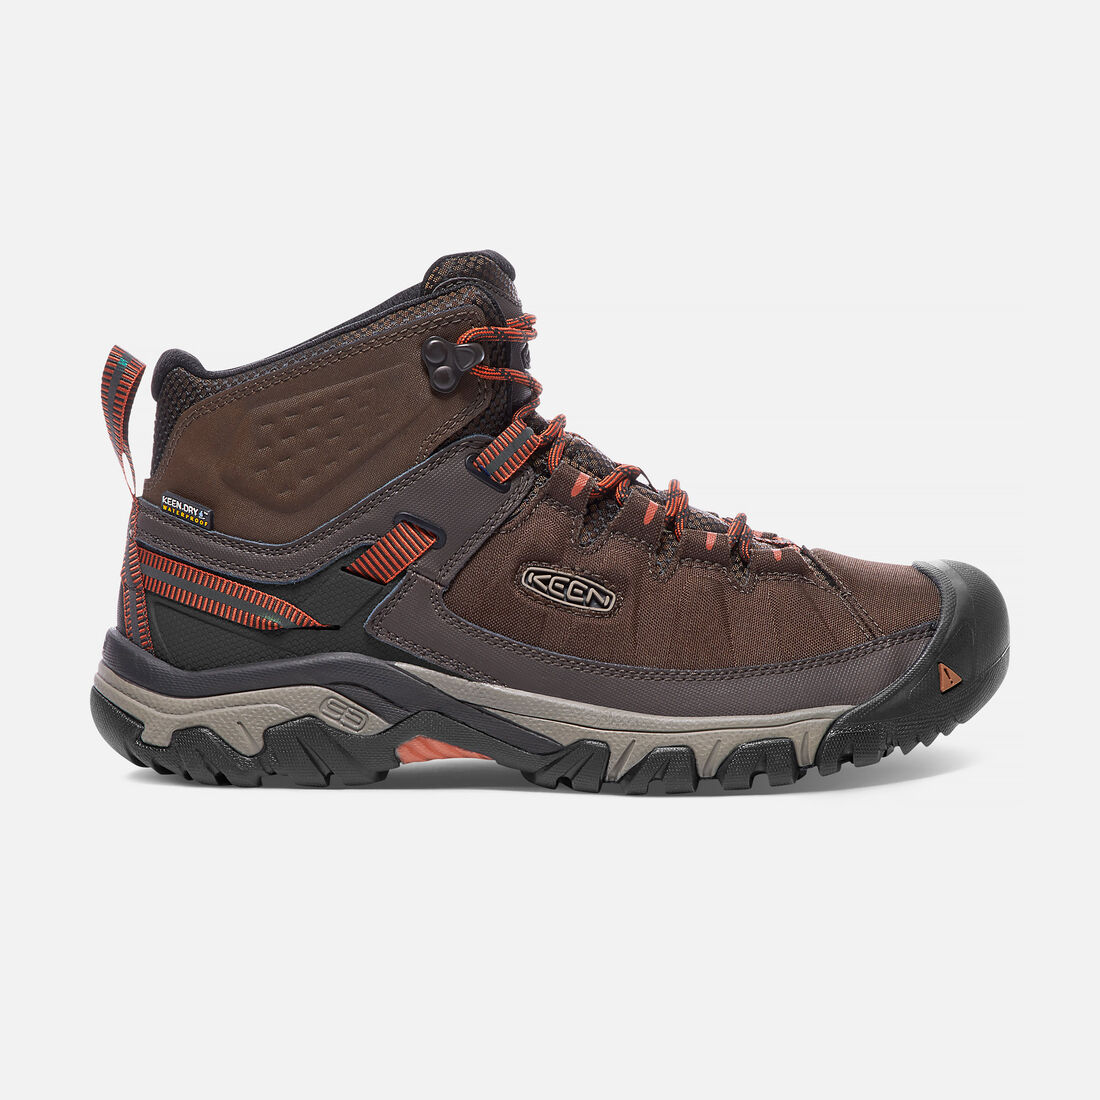 Men's TARGHEE EXP Waterproof Mid in Mulch/Burnt Ochre - large view.